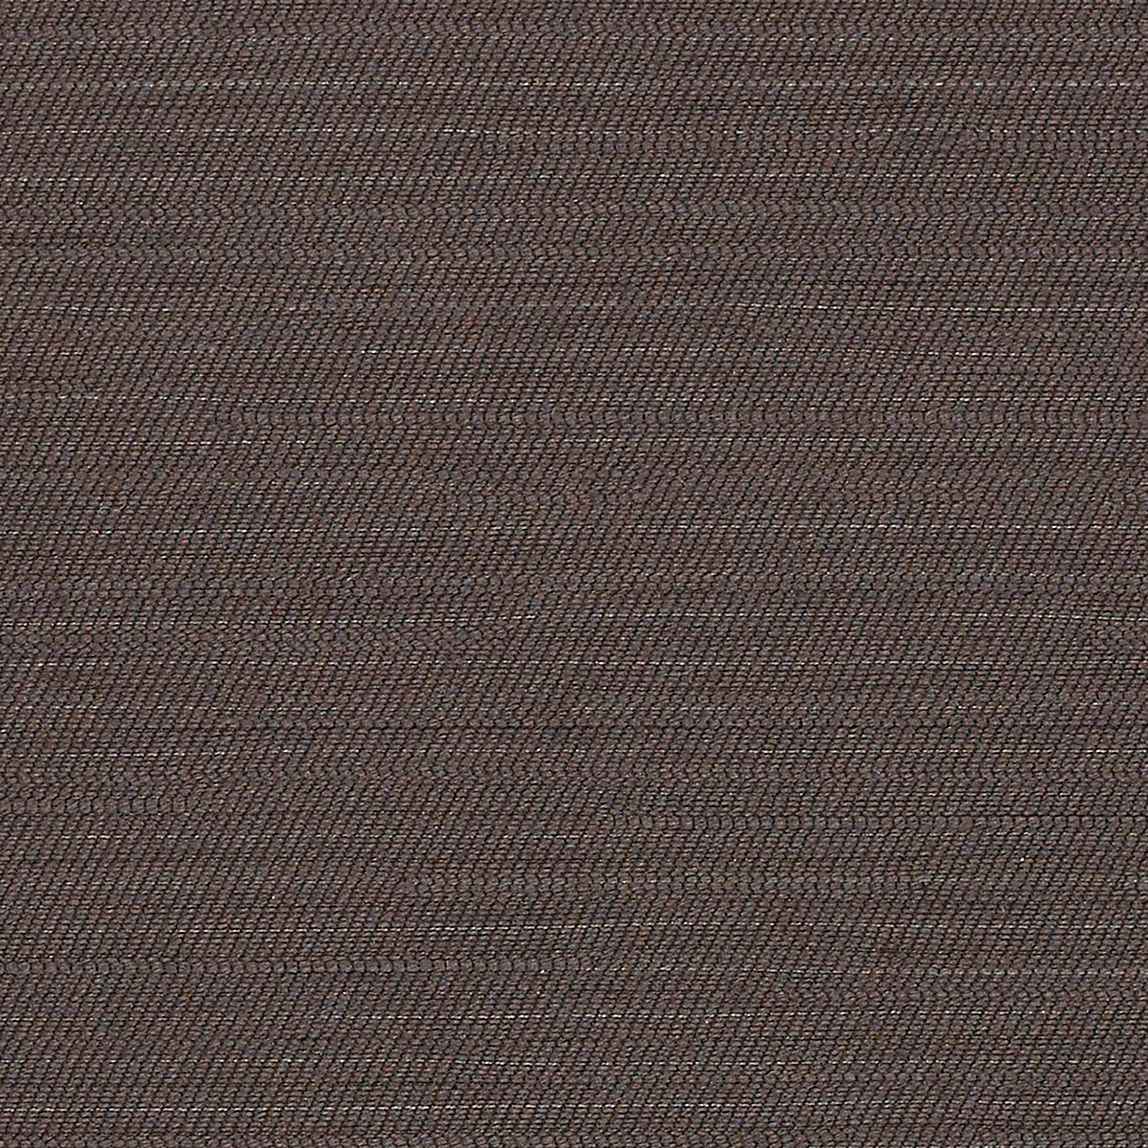 Weaving Palettes Charcoal Swatch